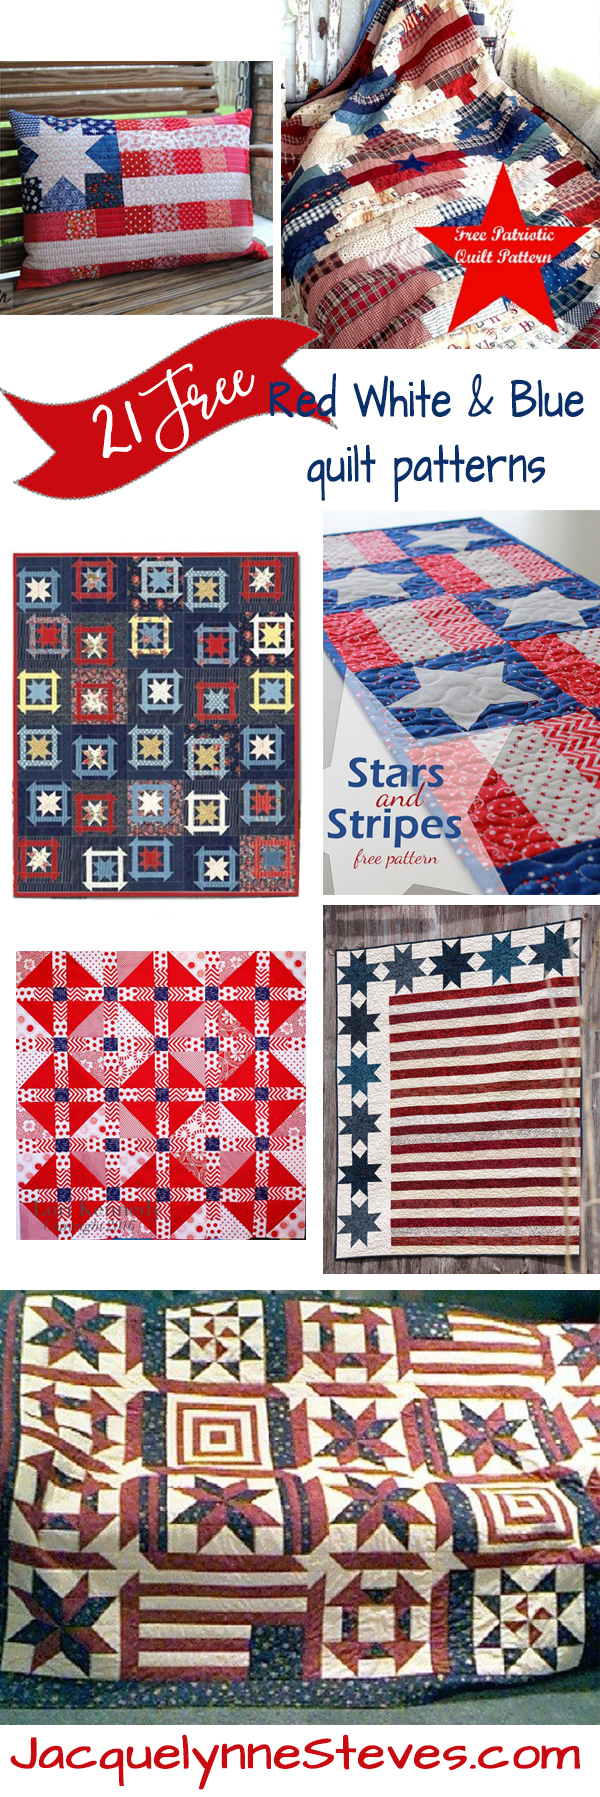 21 Free Red, White and Blue Quilt Patterns